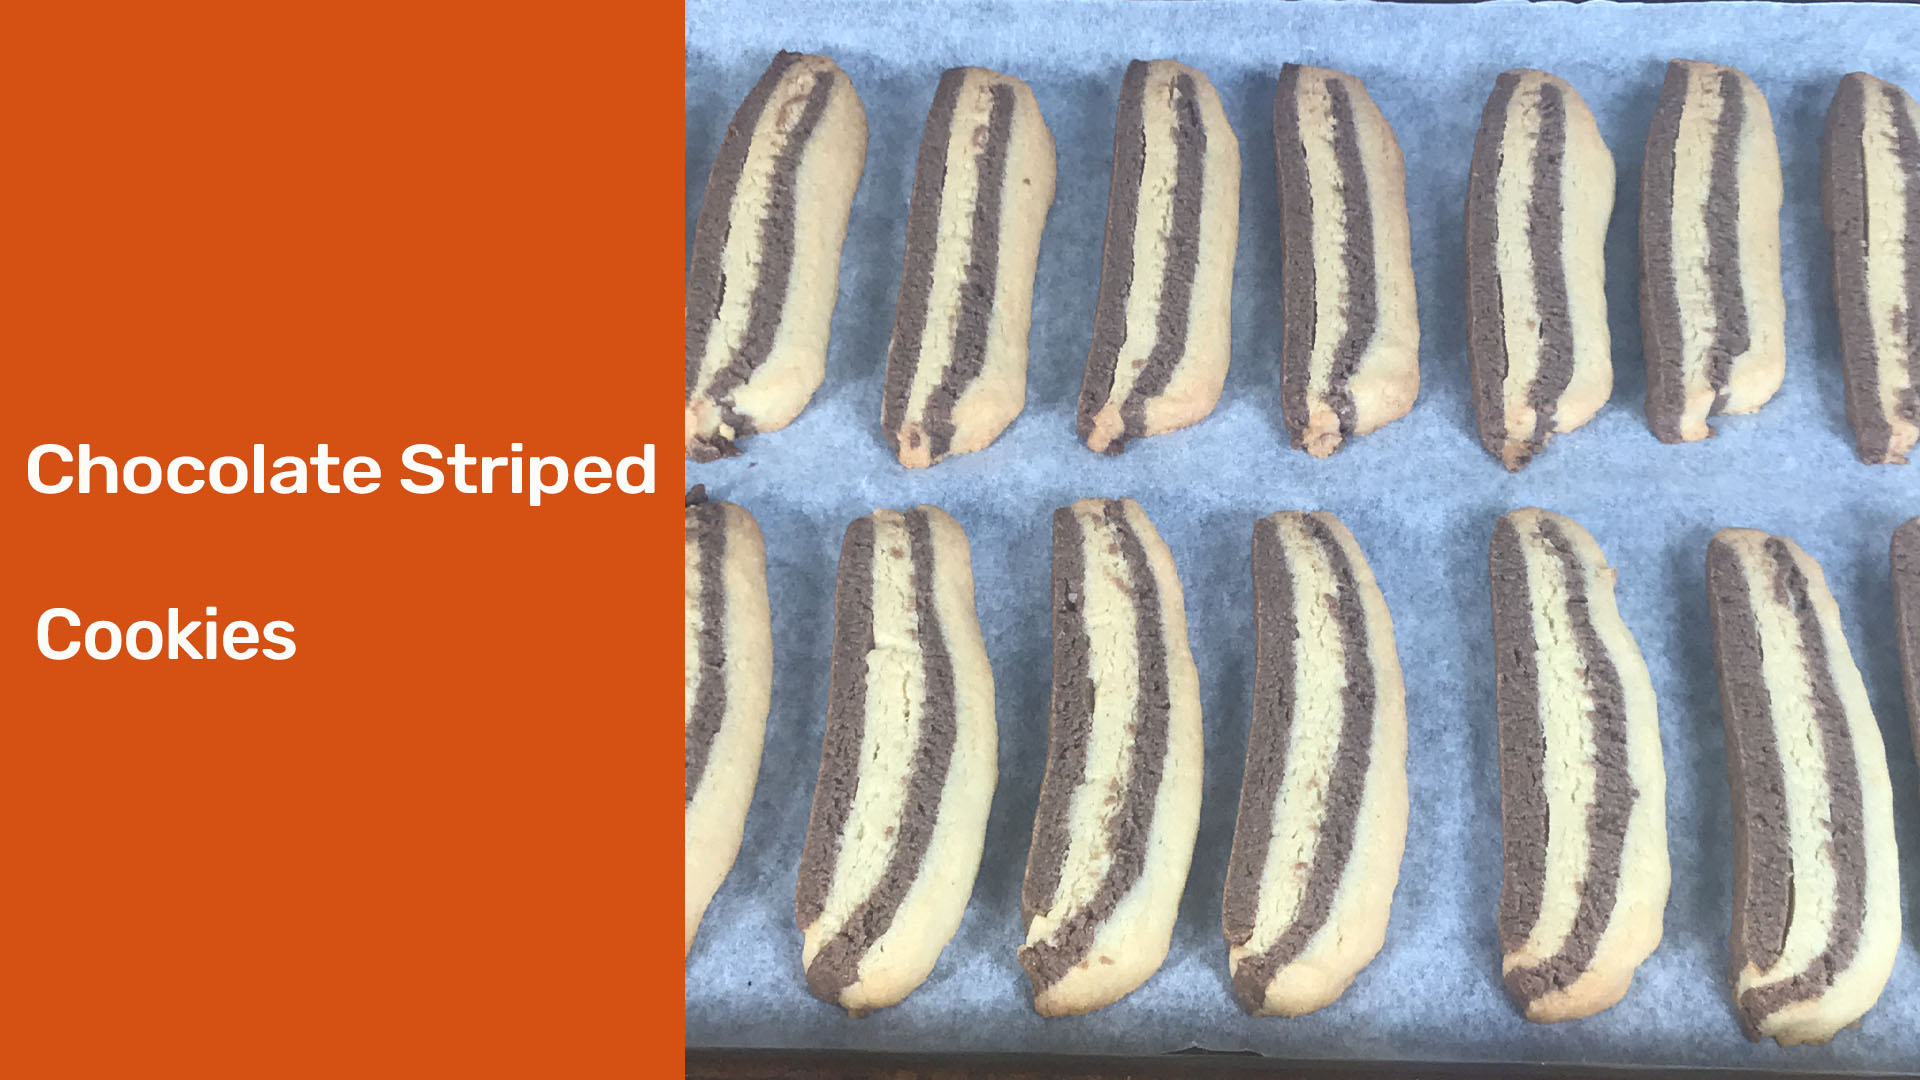 Chocolate striped biscuits - meadow brown bakery